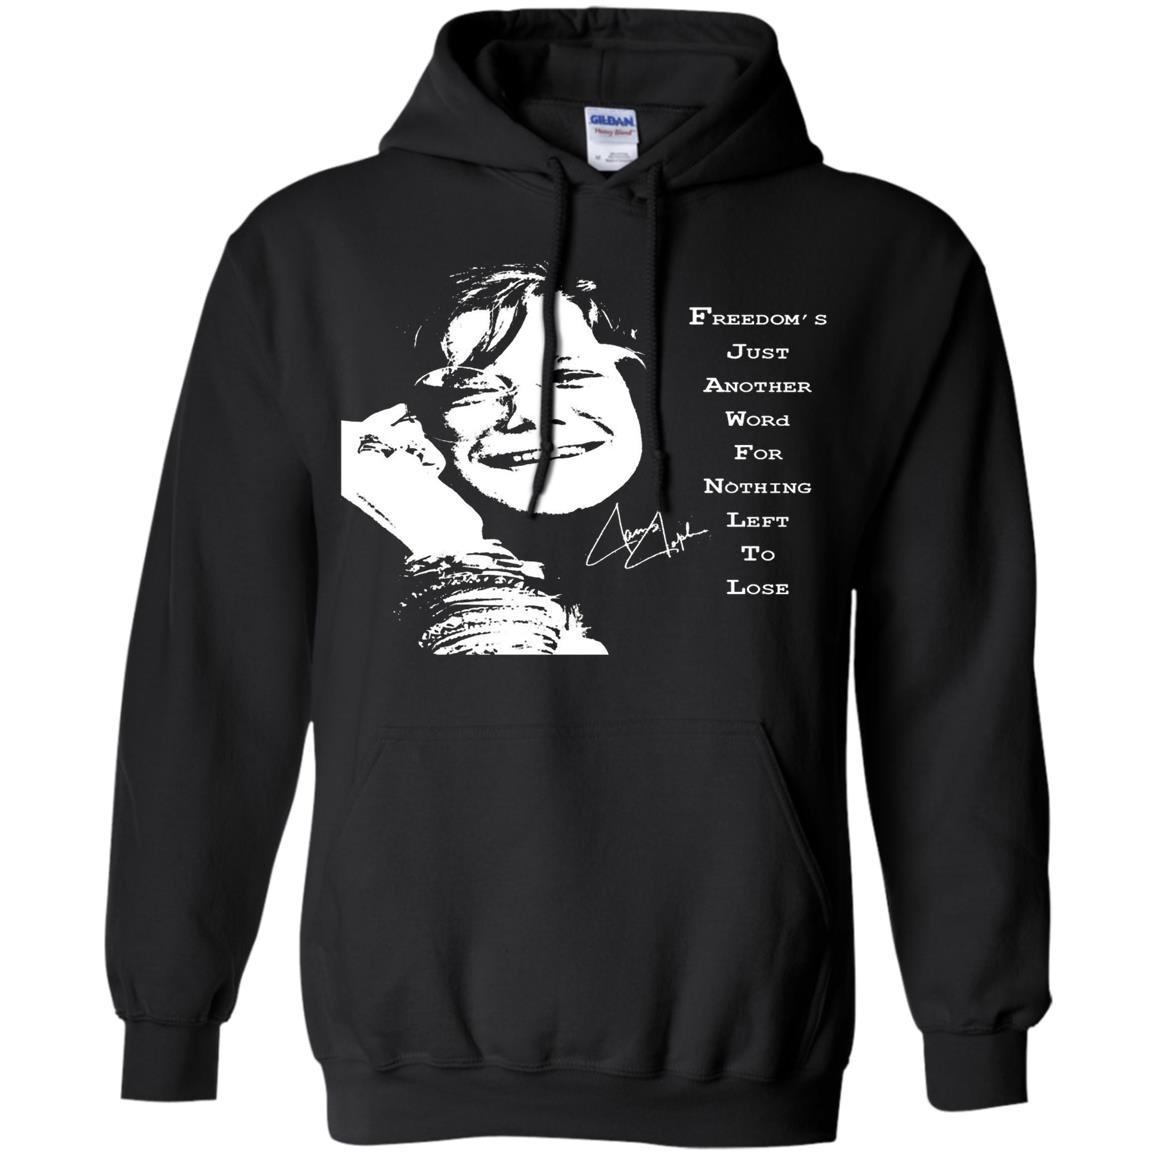 JANIS JOPLIN SHIRTS FOR FANS - Pullover Hoodie Black / 5XL